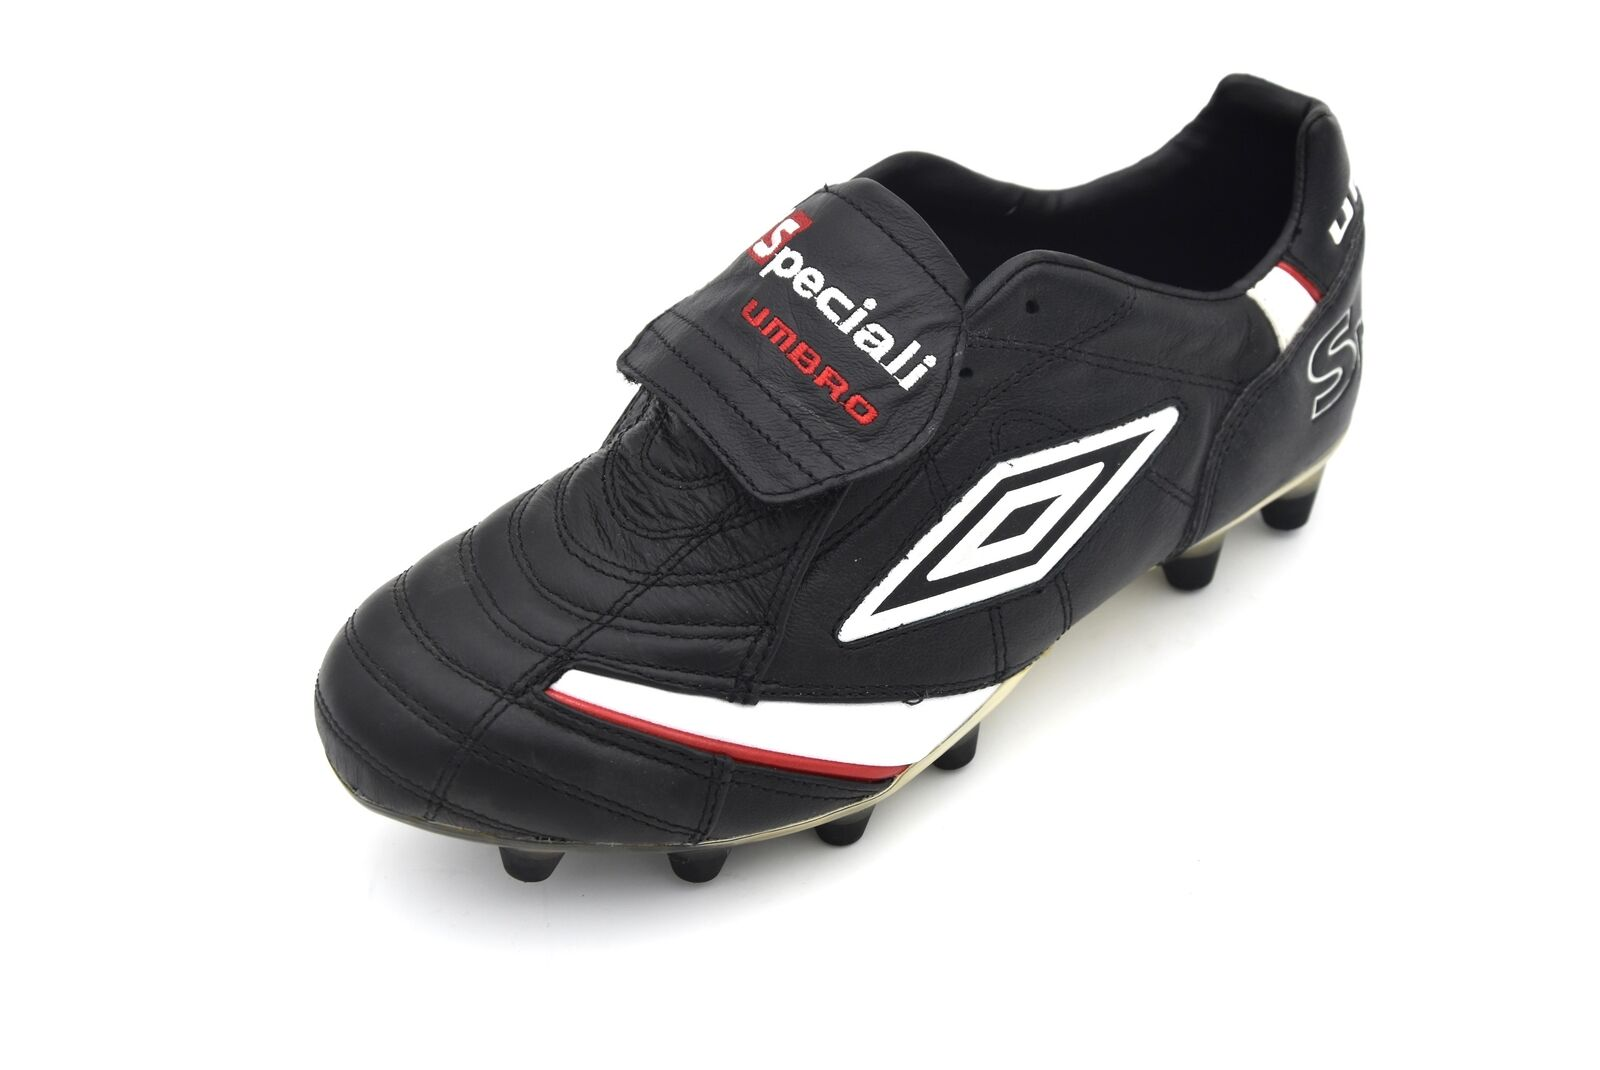 UMBRO MAN SPORTS FOOTBALL SOCCER CLEATS schuhe LEATHER CODE 887016-137